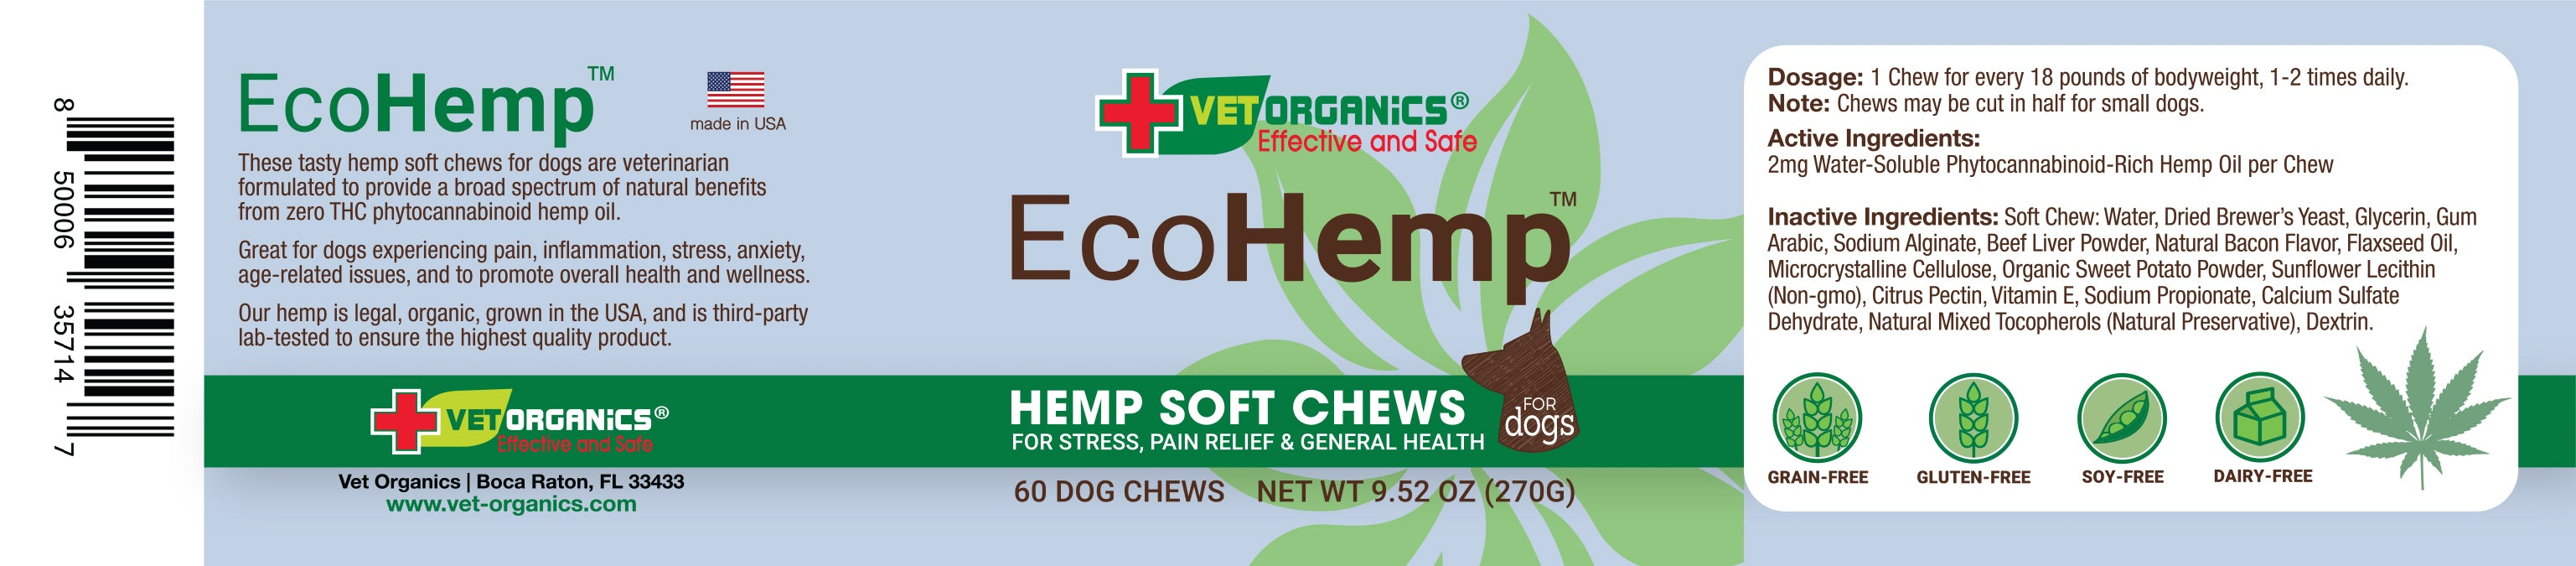 EcoHemp-chews-label